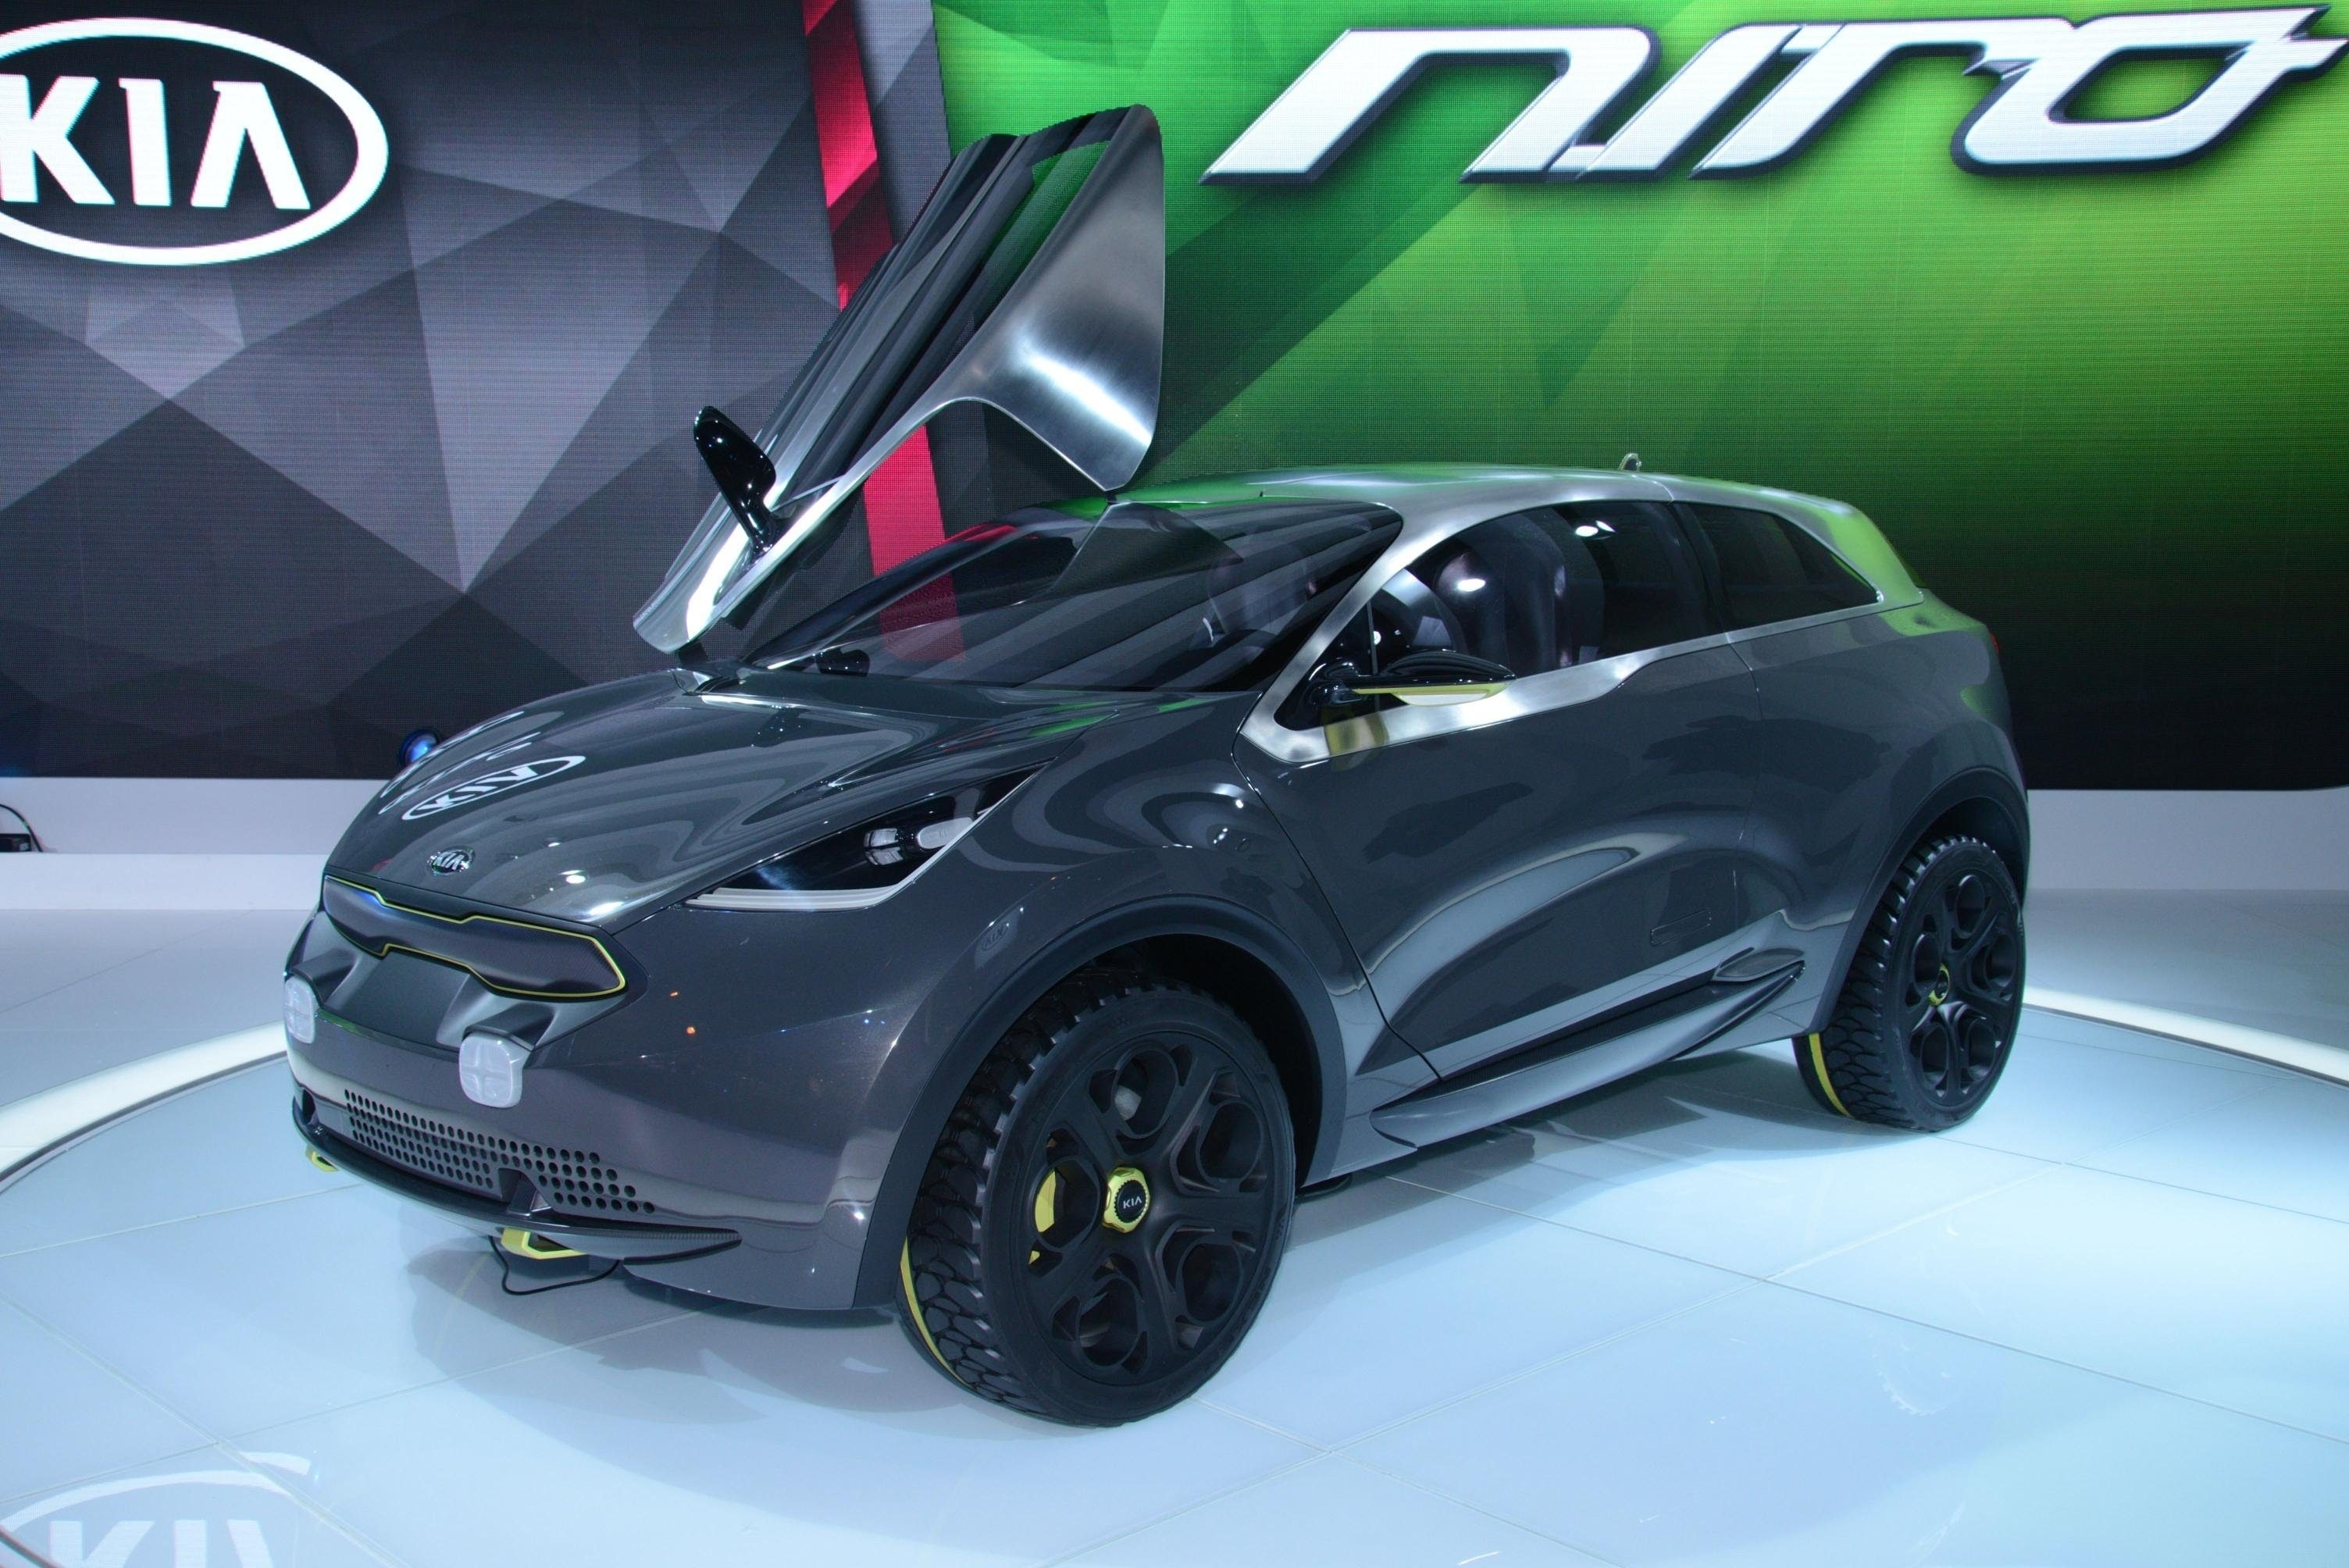 73 The Best 2020 Kia Niro Images